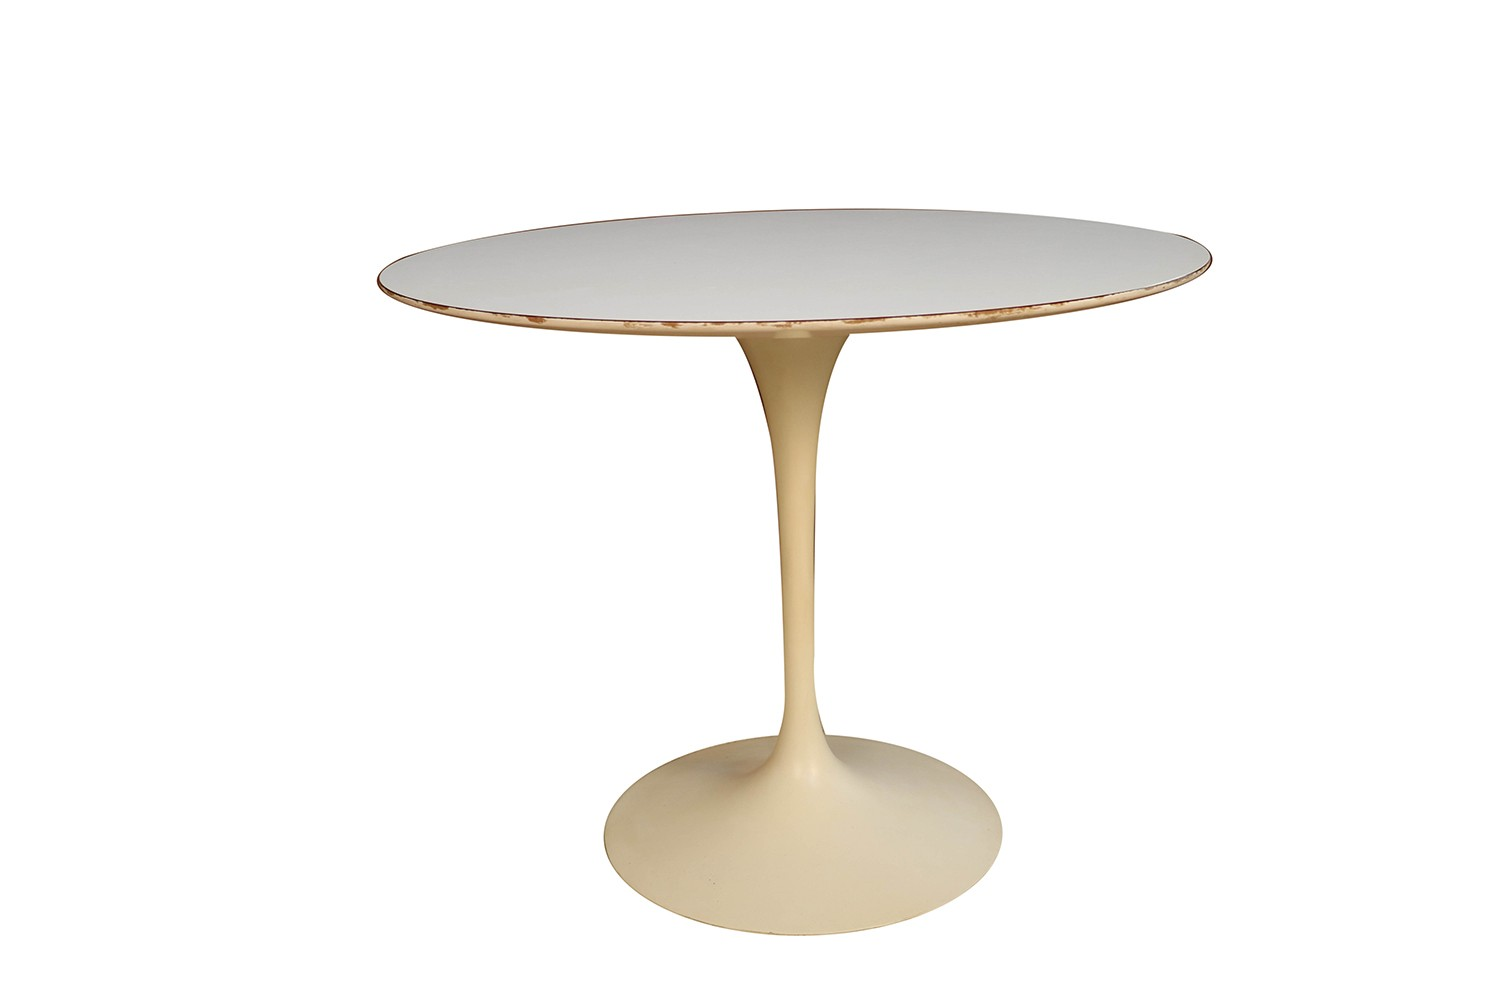 Saarinen Knoll Table Early Knoll Mid Century Vintage Round Saarinen Tulip Table